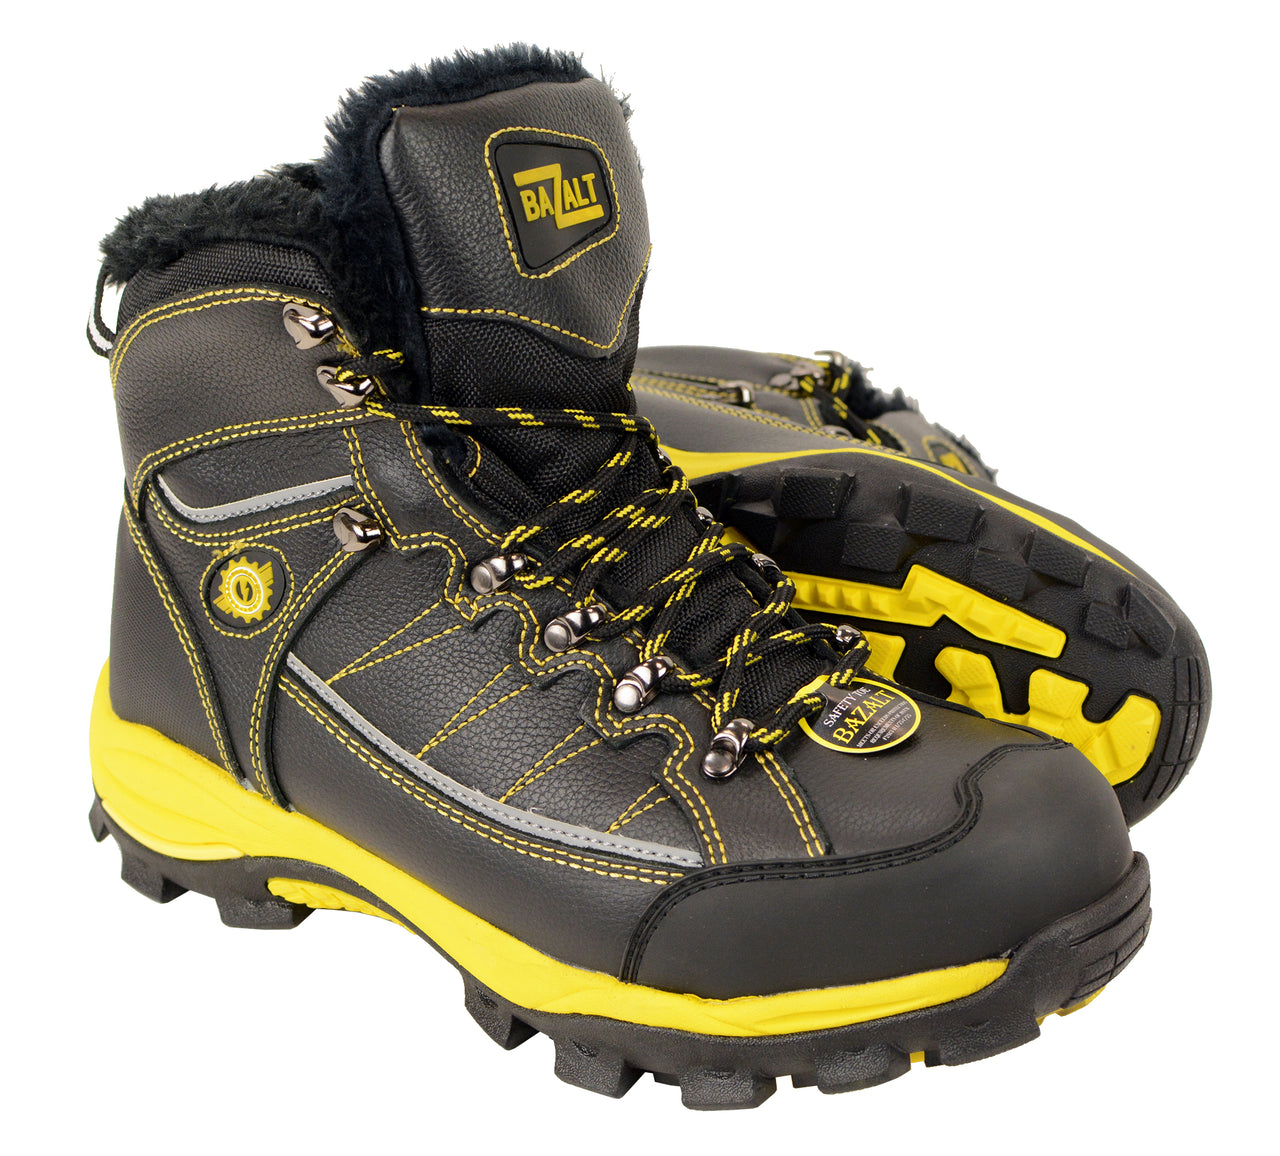 MBM9125ST-Men's Black & Yellow Water & Frost Proof Leather Boots w/ Faux Fur Lining & Composite Toe - HighwayLeather